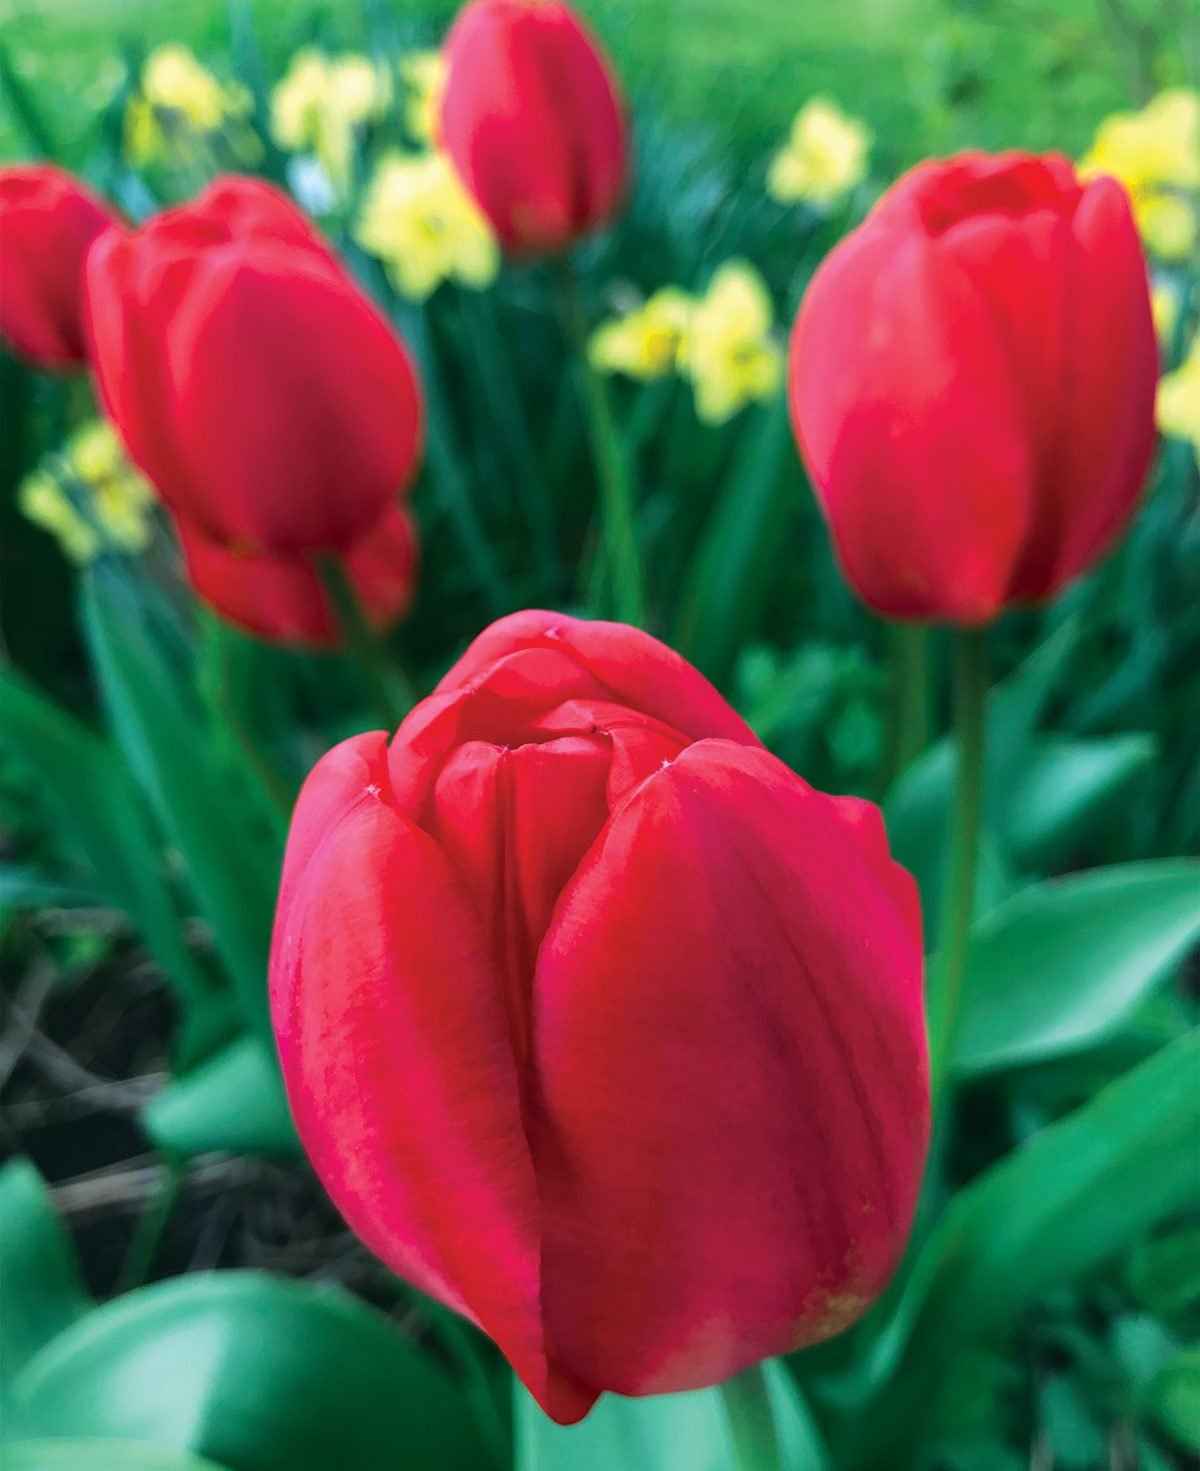 Flower Picture Gallery - Red Tulip